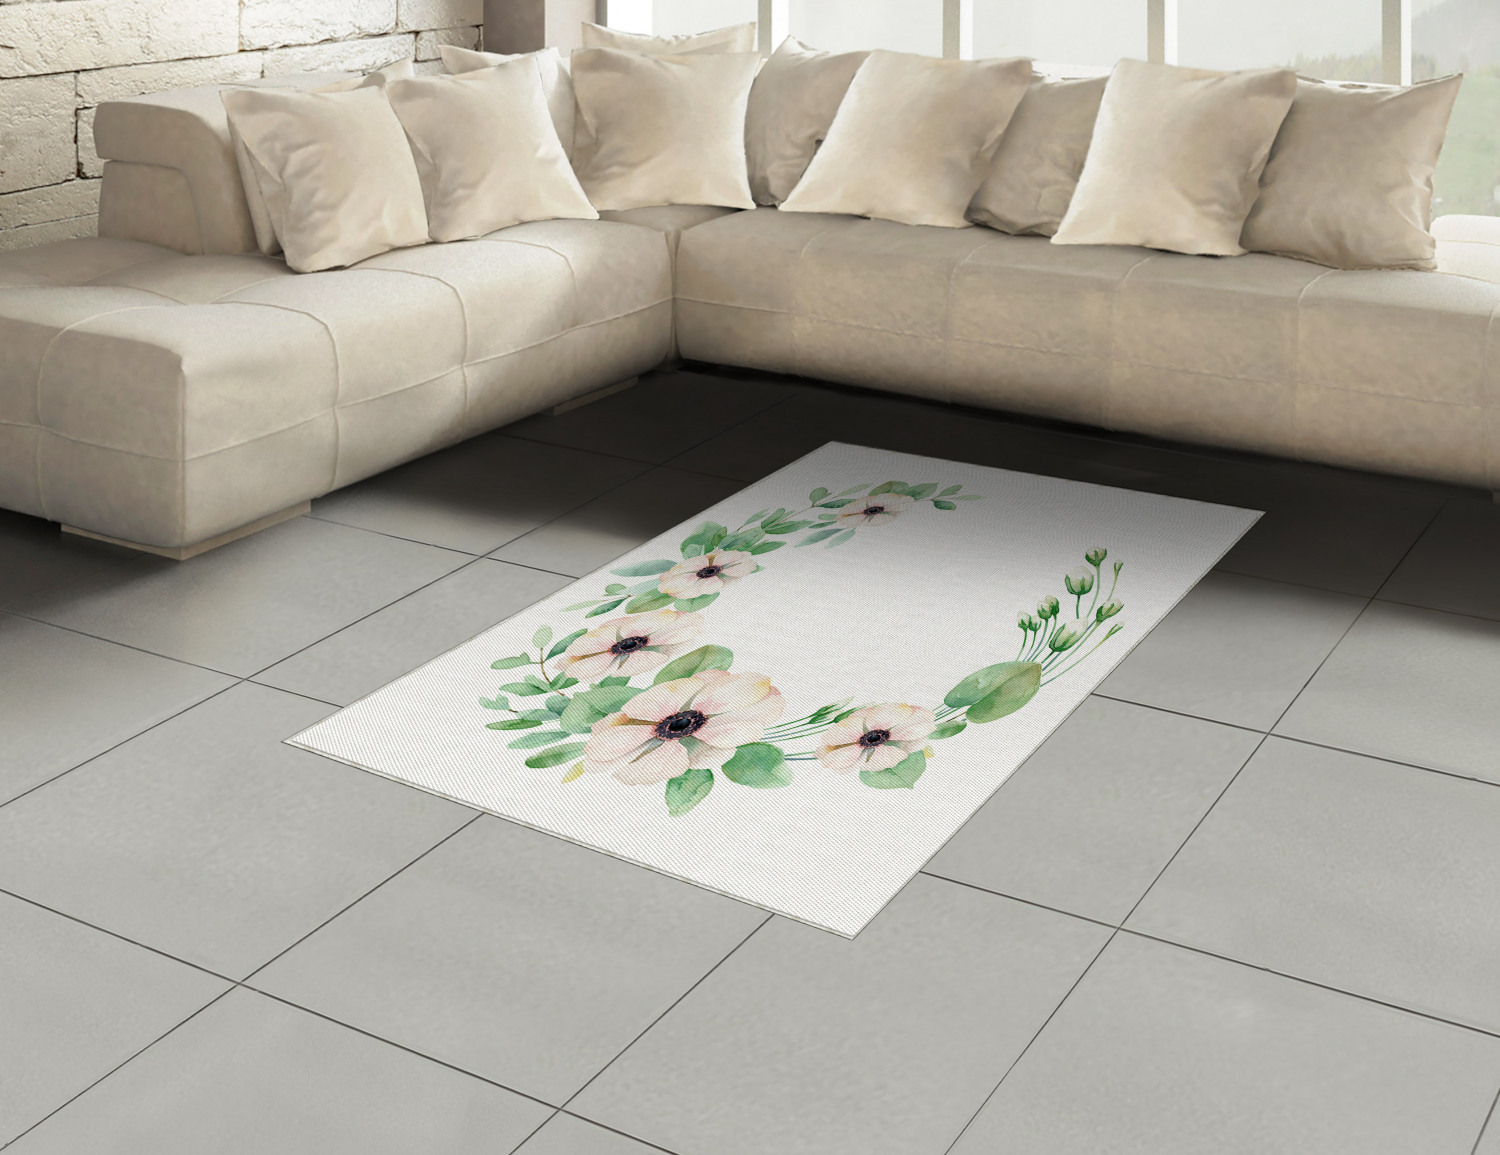 Anemone-Flower-Area-Rug-Decor-Flat-Woven-Accent-Rug-Home-Decor-2-Sizes-Ambesonne thumbnail 28